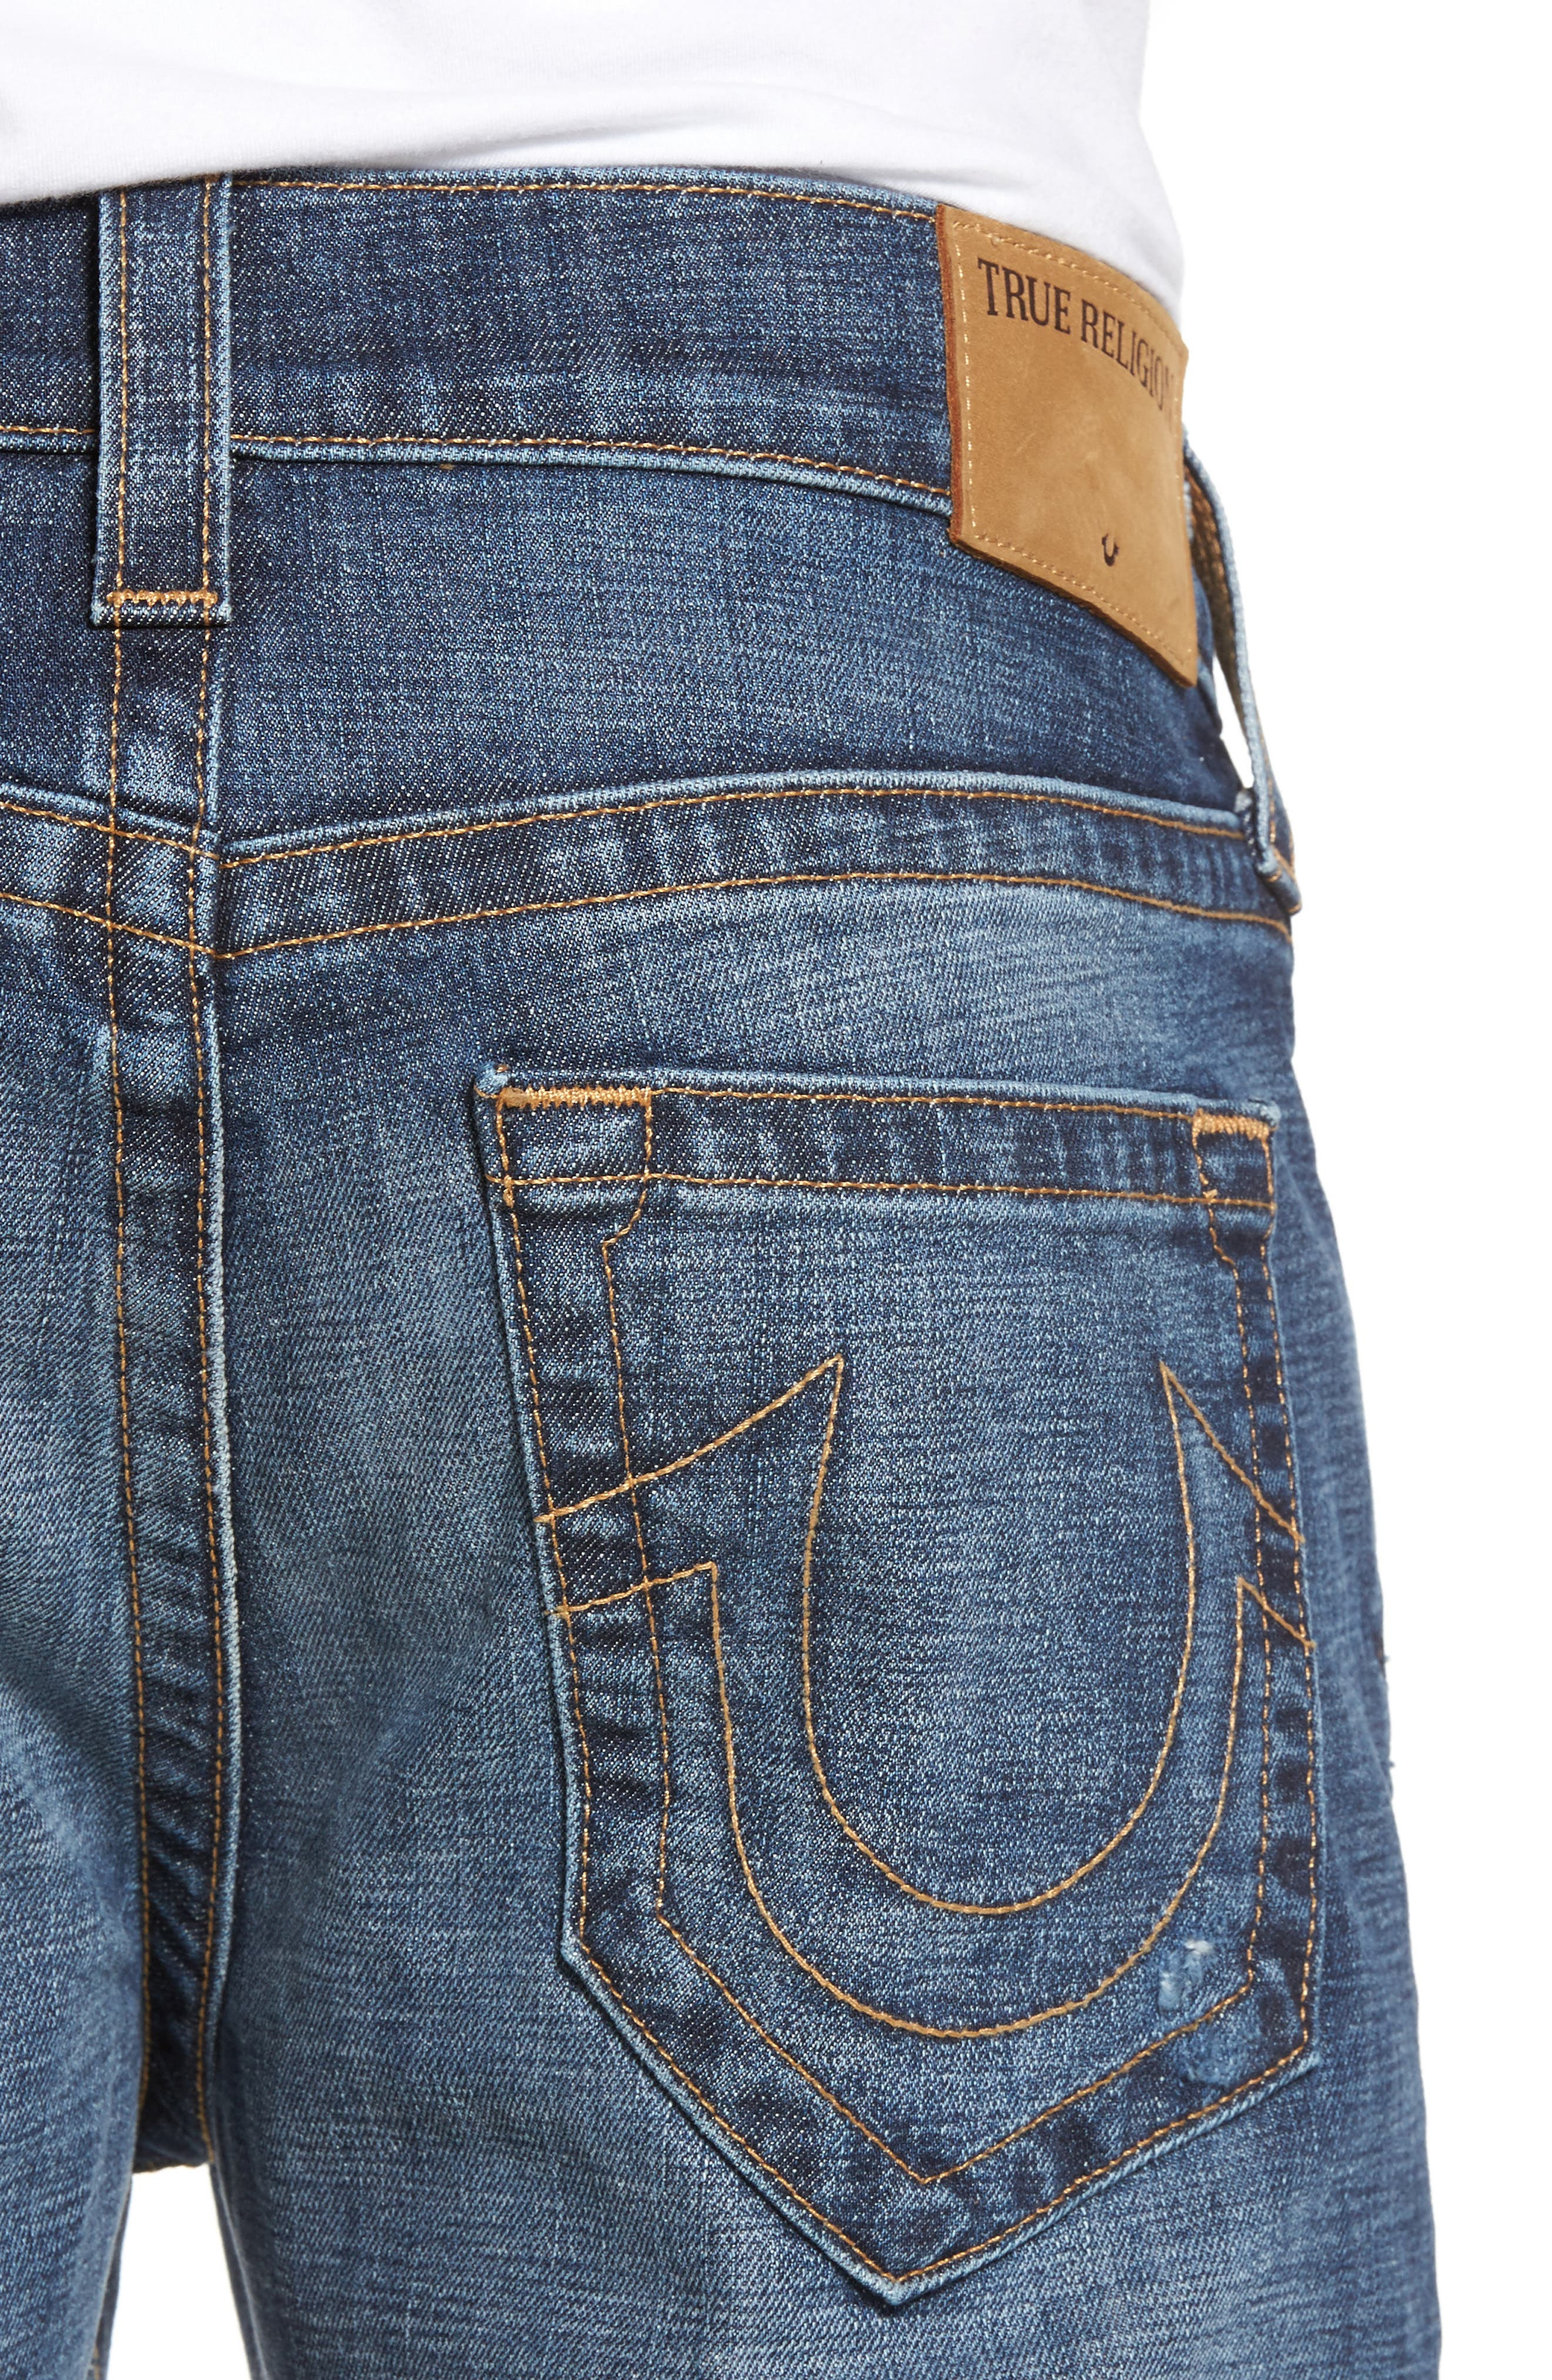 Rocco Skinny Fit Jeans,                             Alternate thumbnail 4, color,                             400